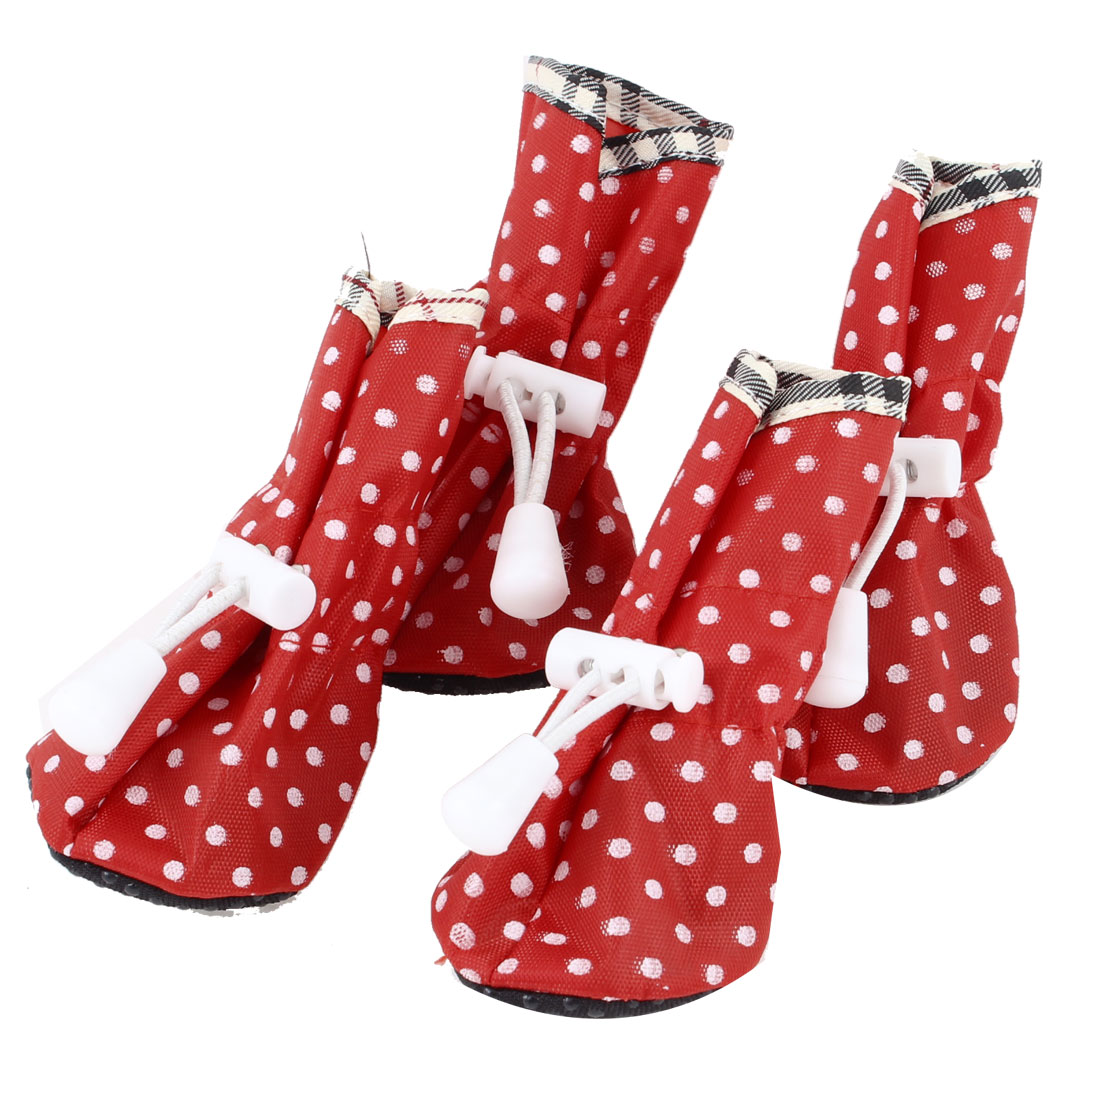 2 Pair Polka Dot Pattern Cat Doggie Drawstring Boots Shoes Red XS Size 2